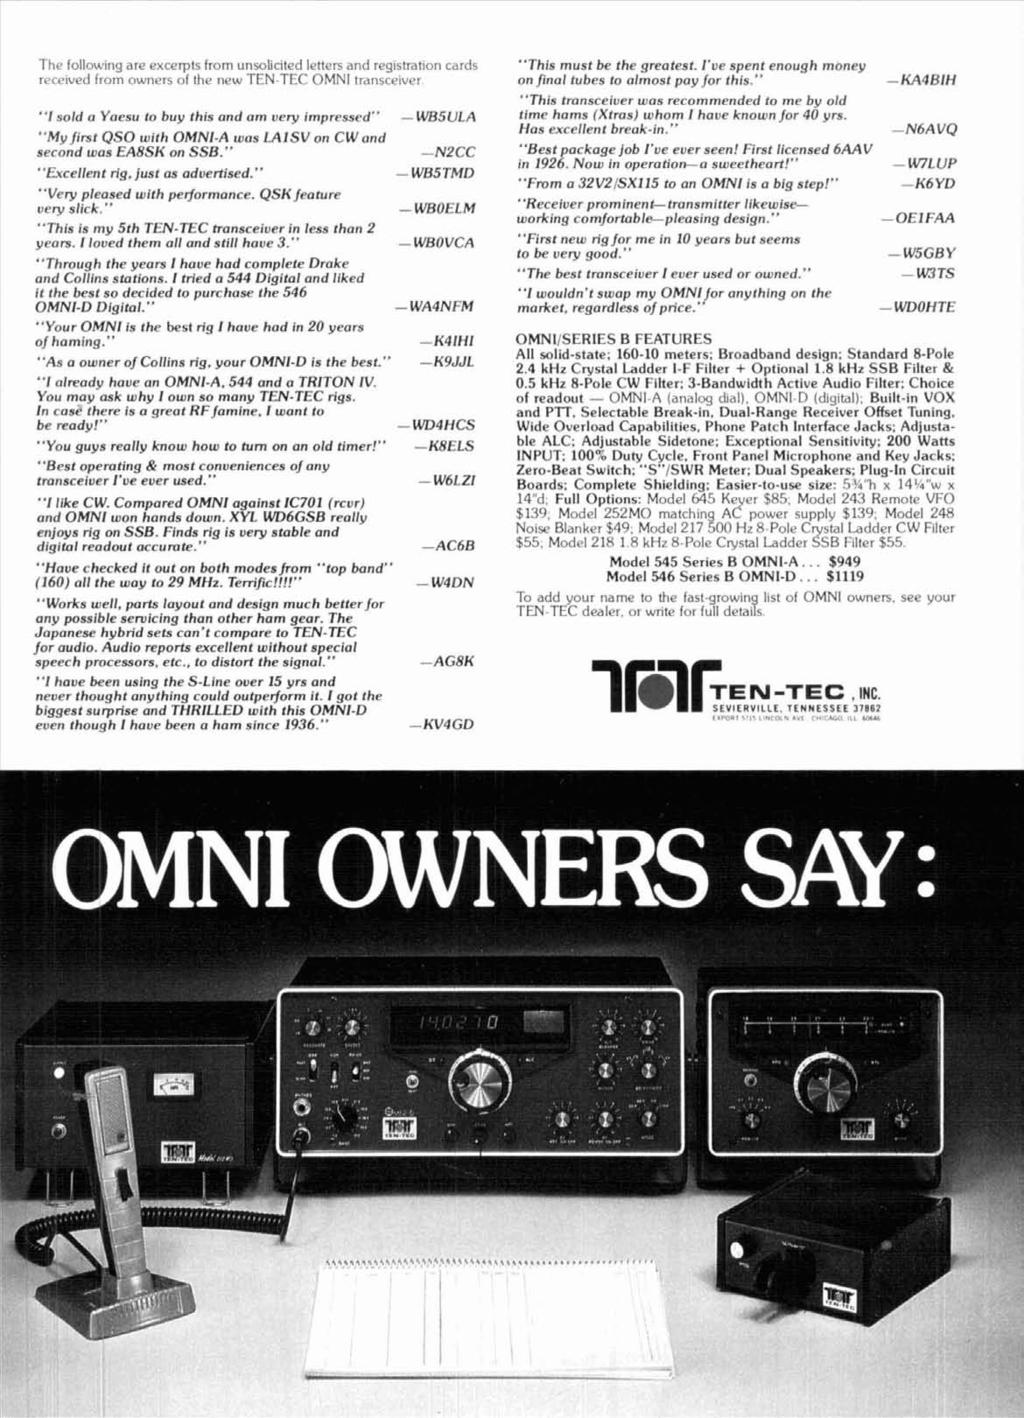 "The follou,ing are excerpt* from unsollnted letters and registratton cards recc~ved from owners of the new TEN TtC OMNI transreiver ""I sold a Yaesu to buy this and am very impressed"" -WBJULA ""MyJirst"